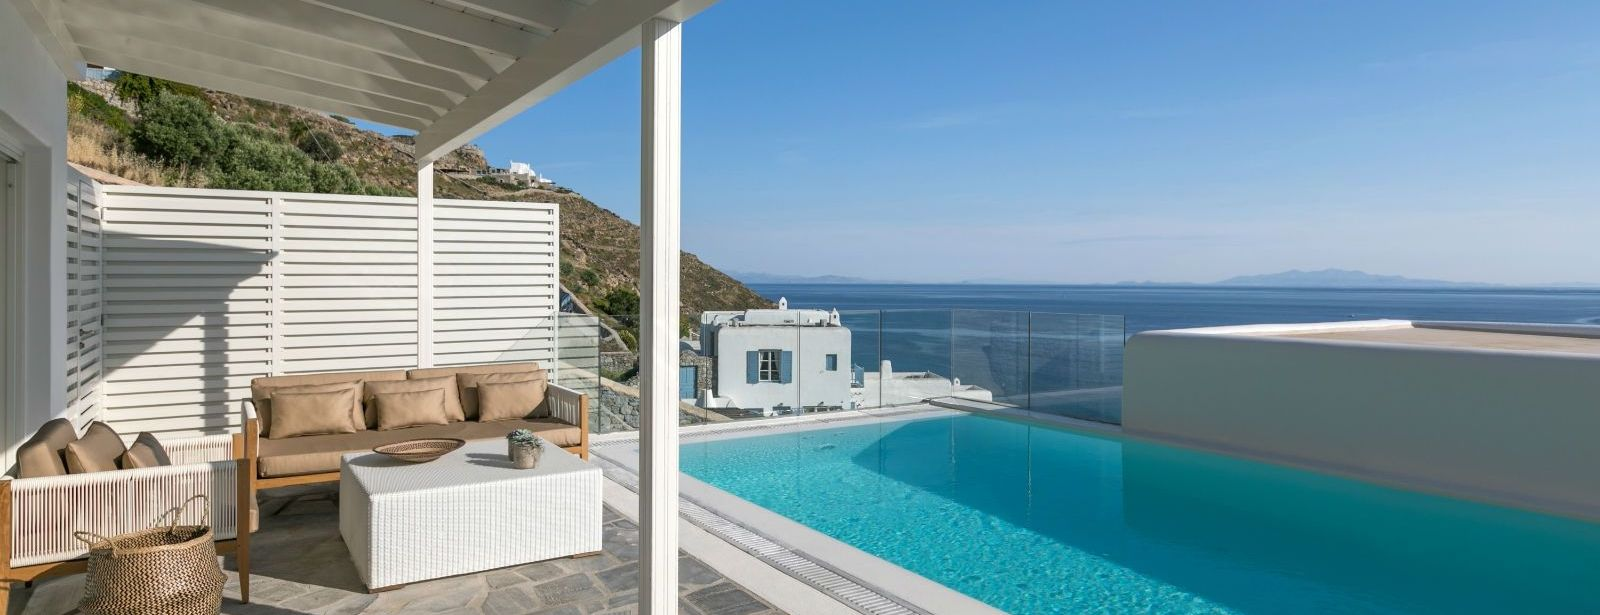 Villa Sapphire Pool Sea view Santa Marina Resort Mykonos Luxury Hotel